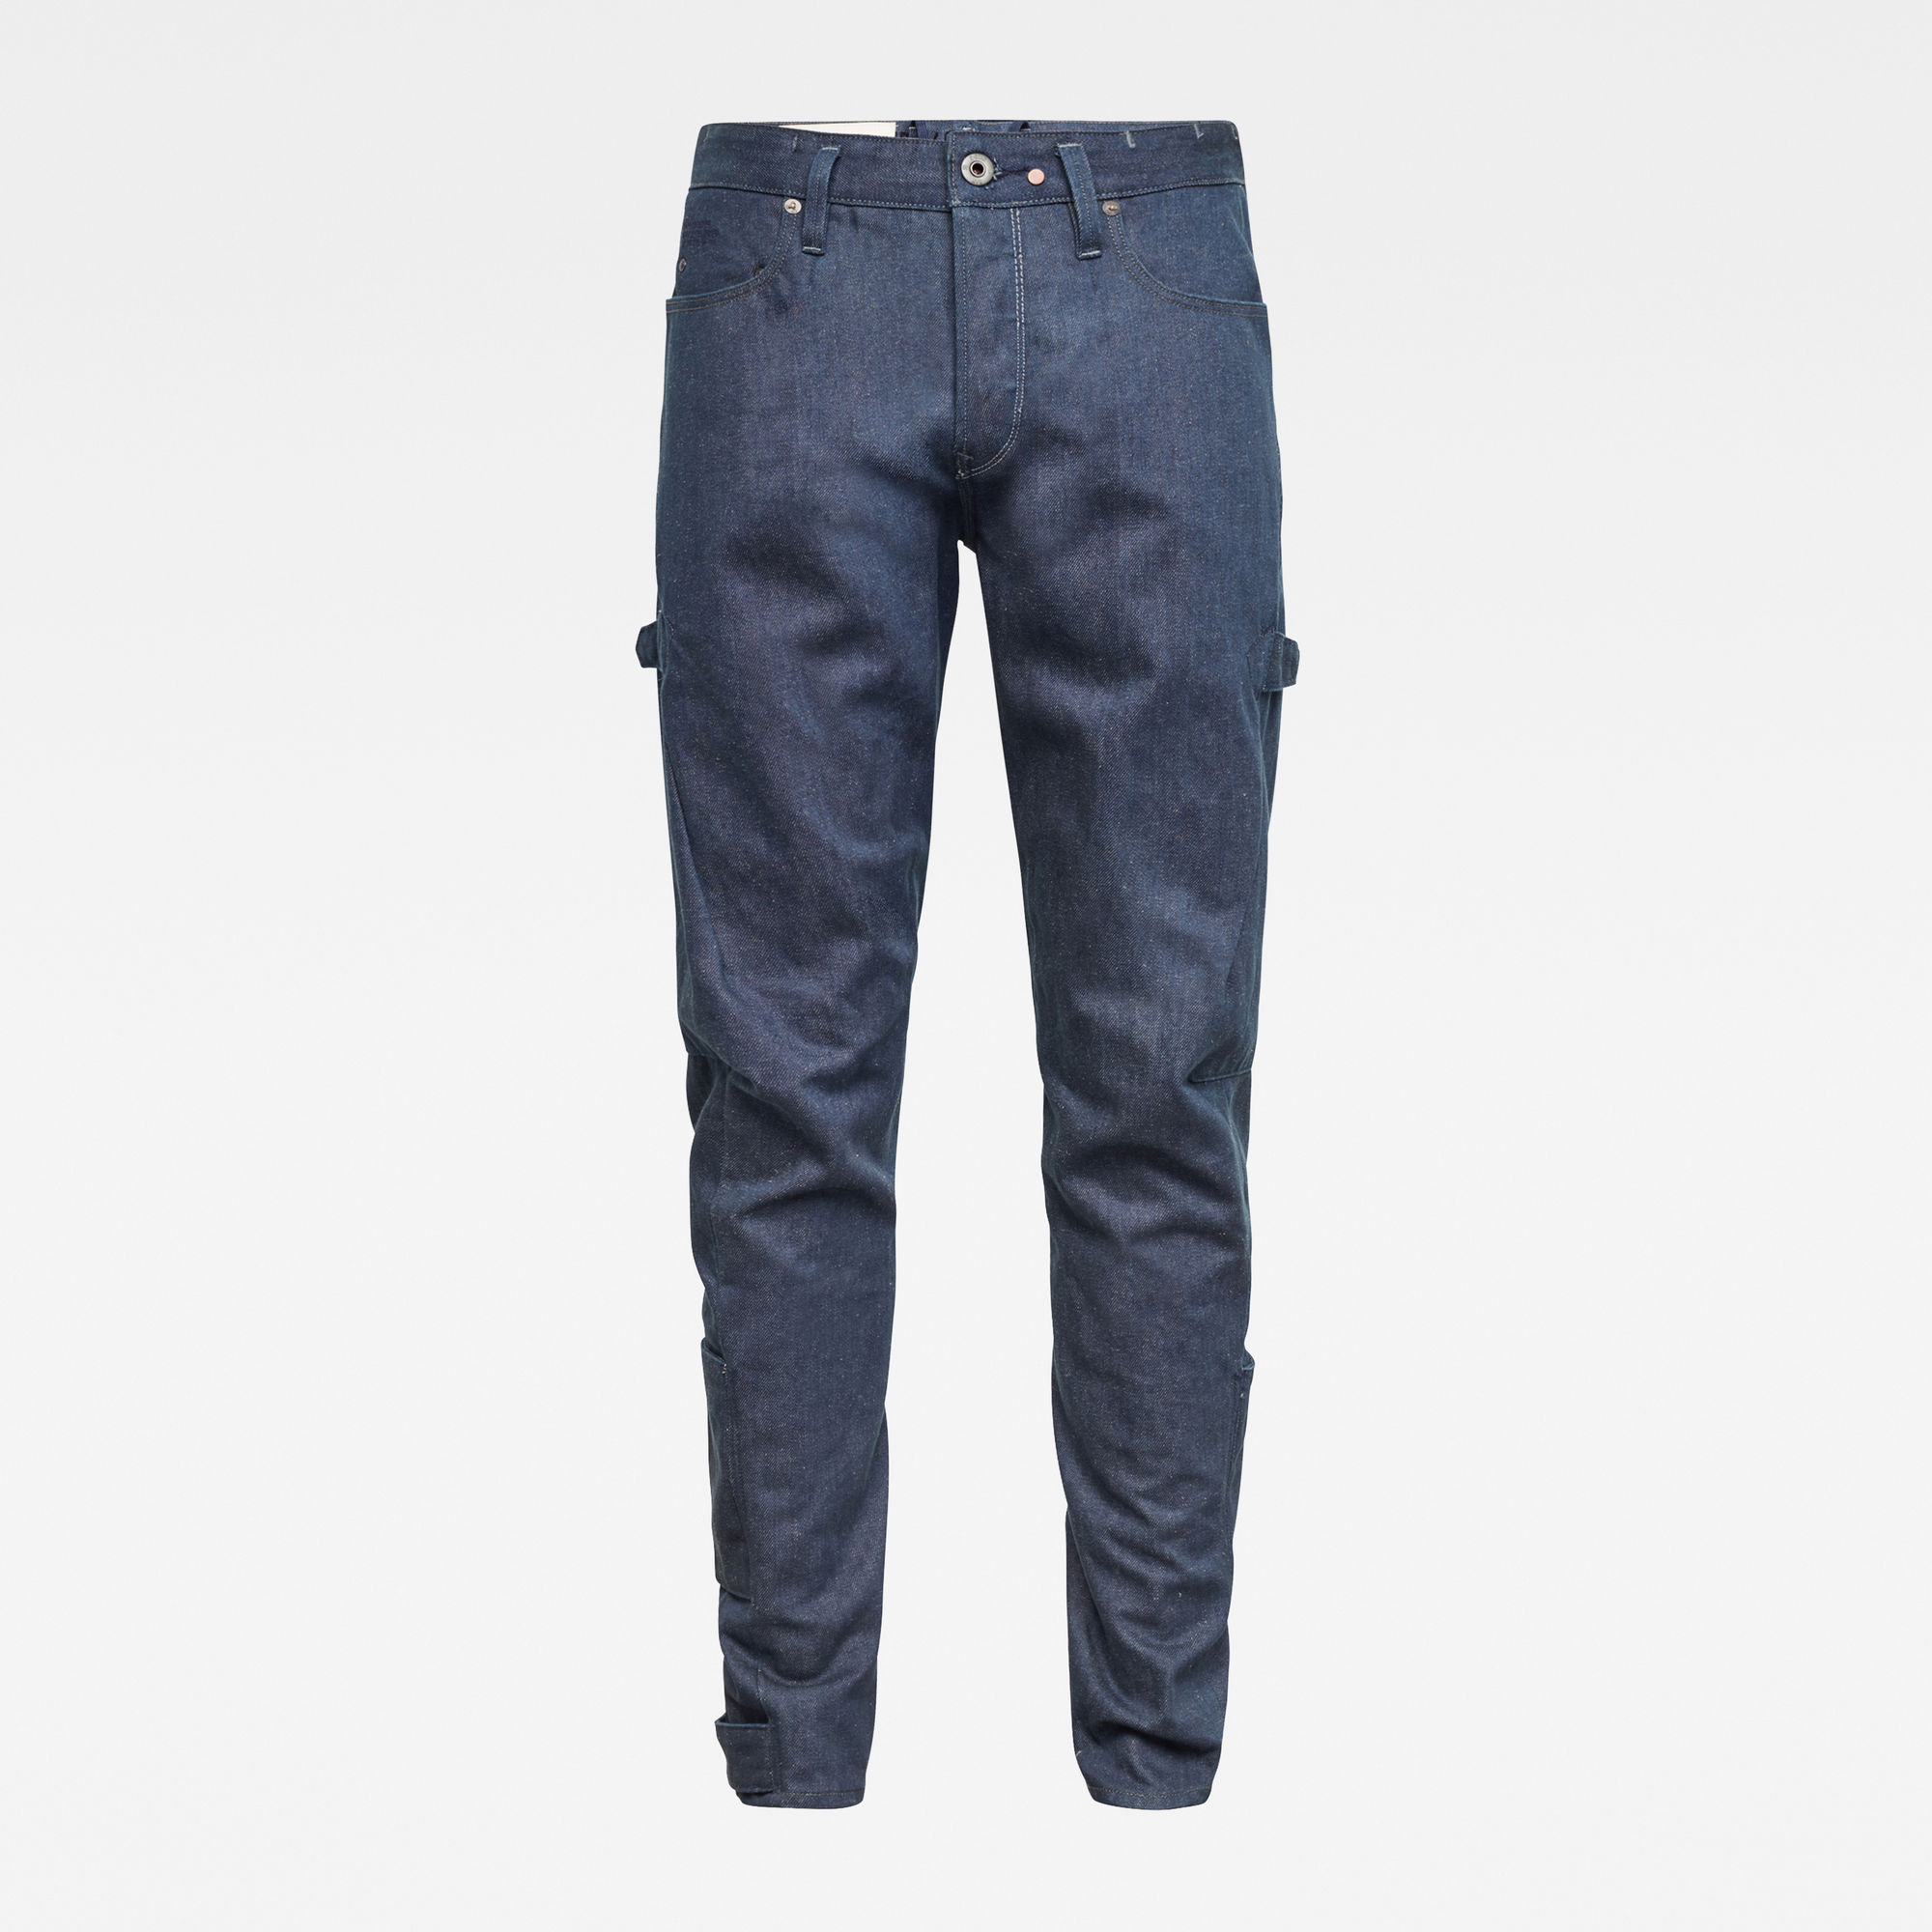 G-Star RAW Heren GSRR Scutar 3D Tapered Selvedge Jeans Donkerblauw